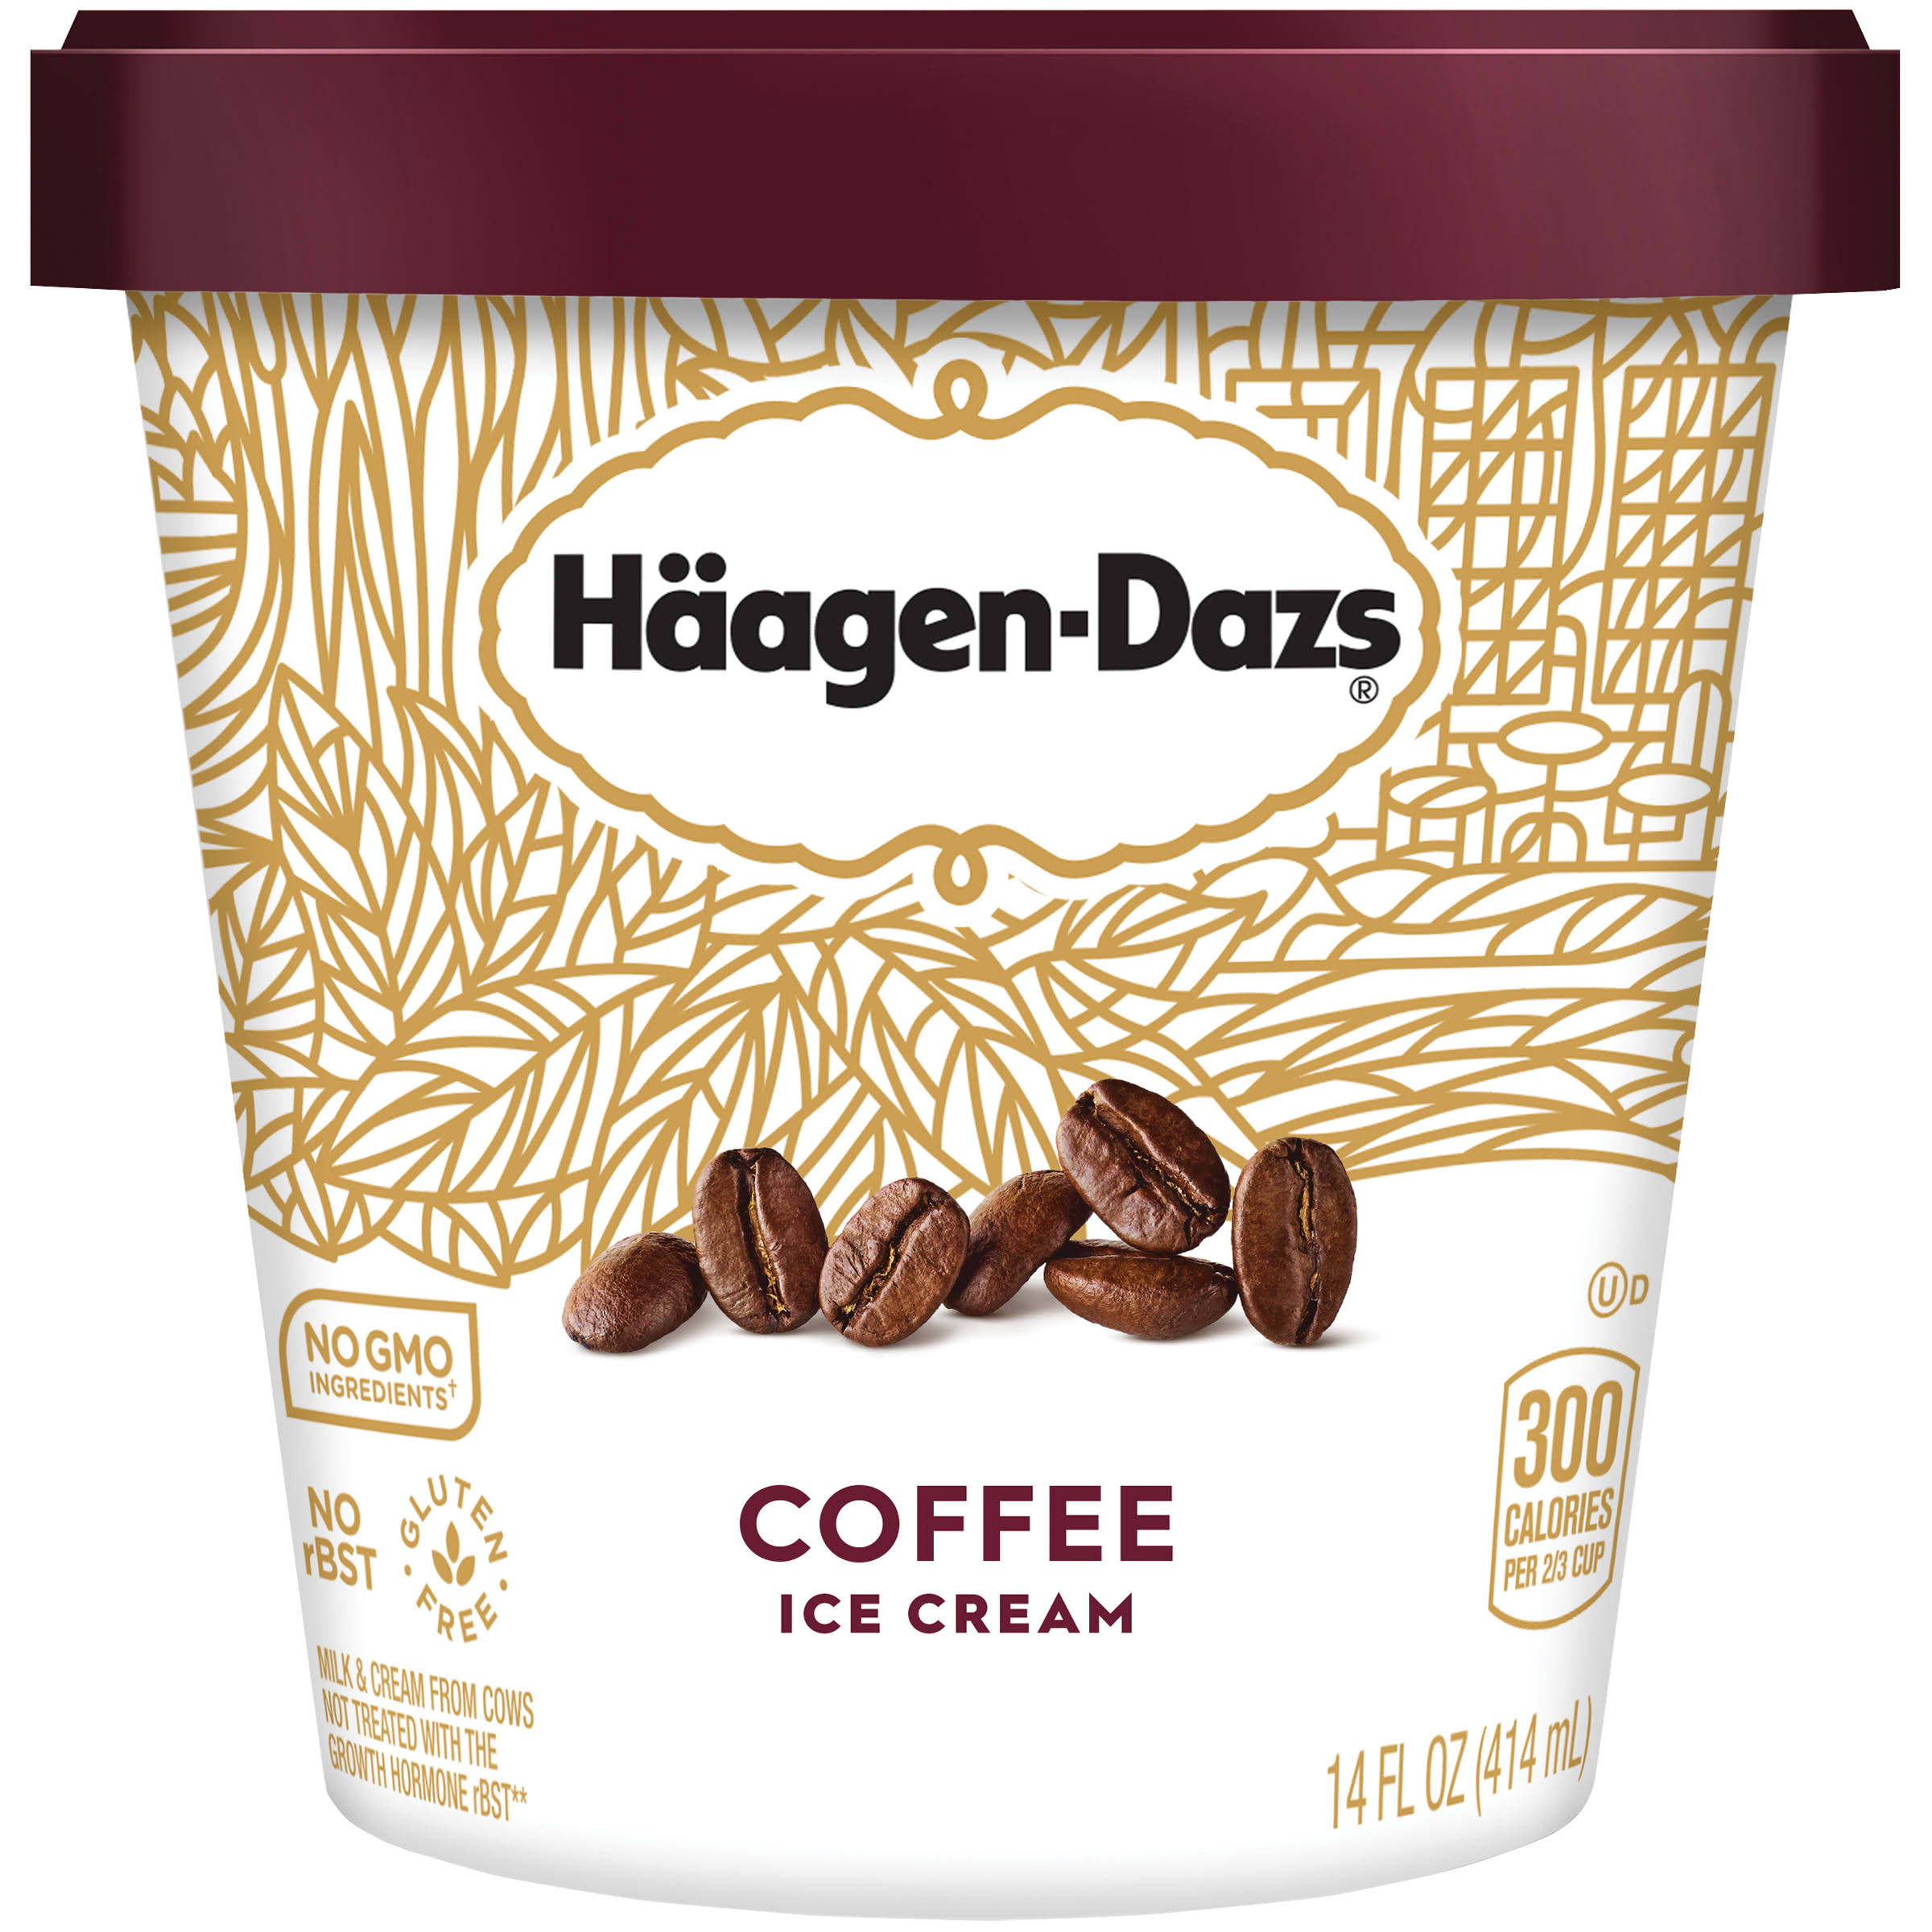 Häagen-Dazs Ice Cream - Coffee